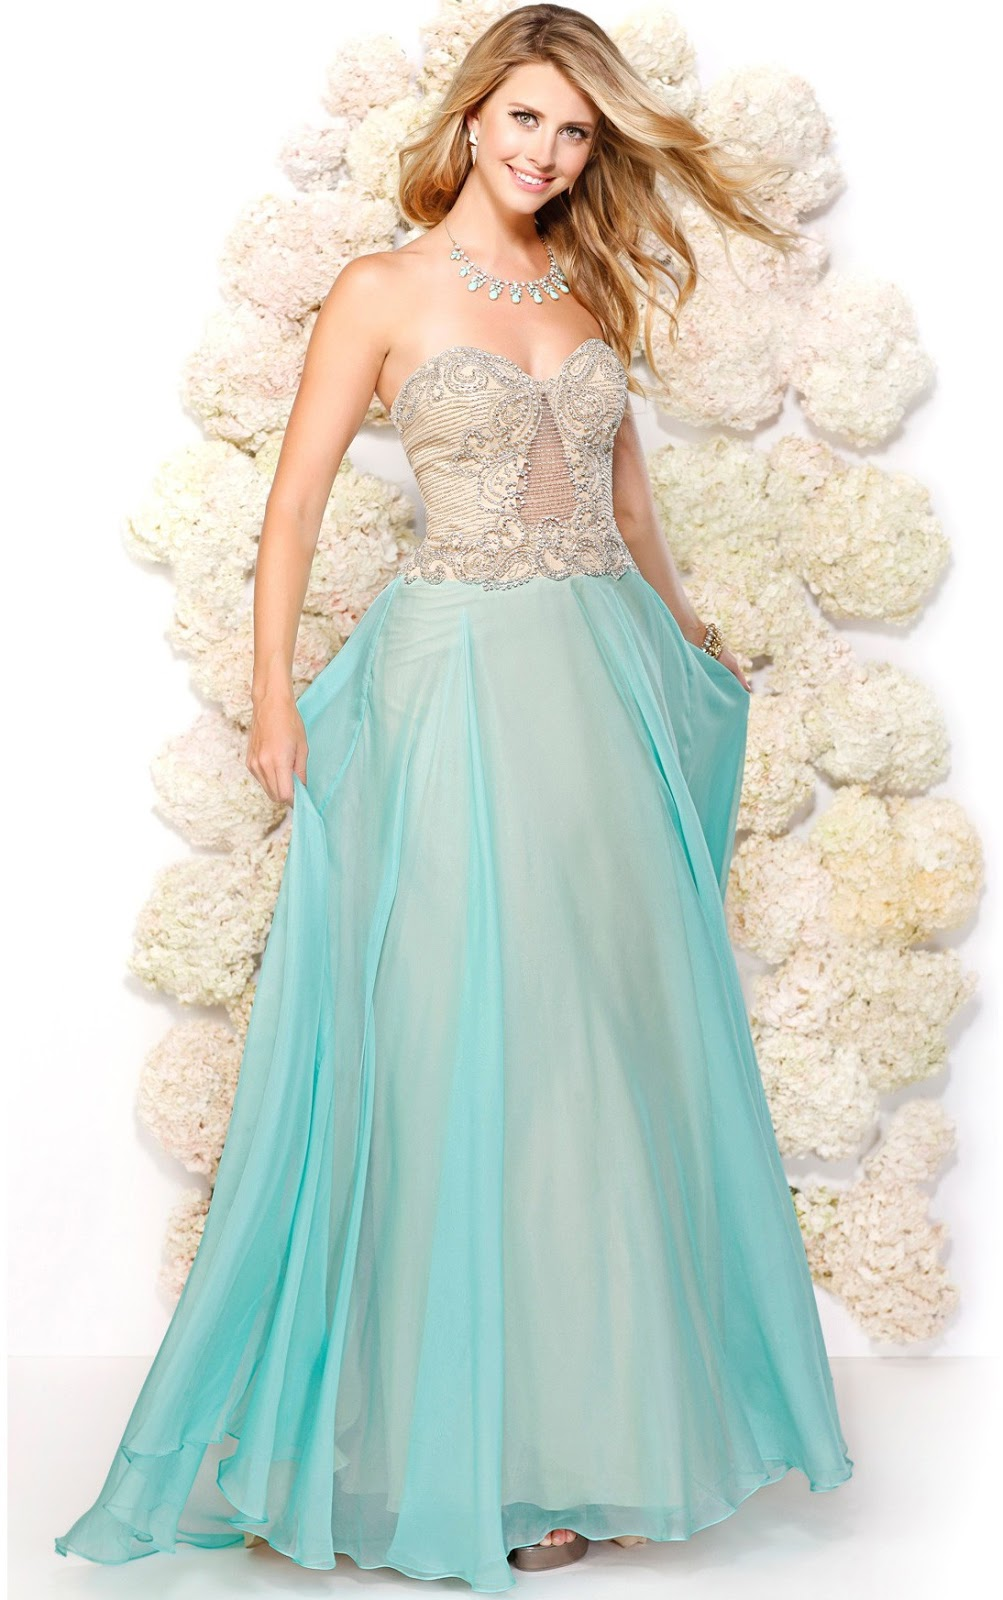 Luch Luch Craft: Prom Dress